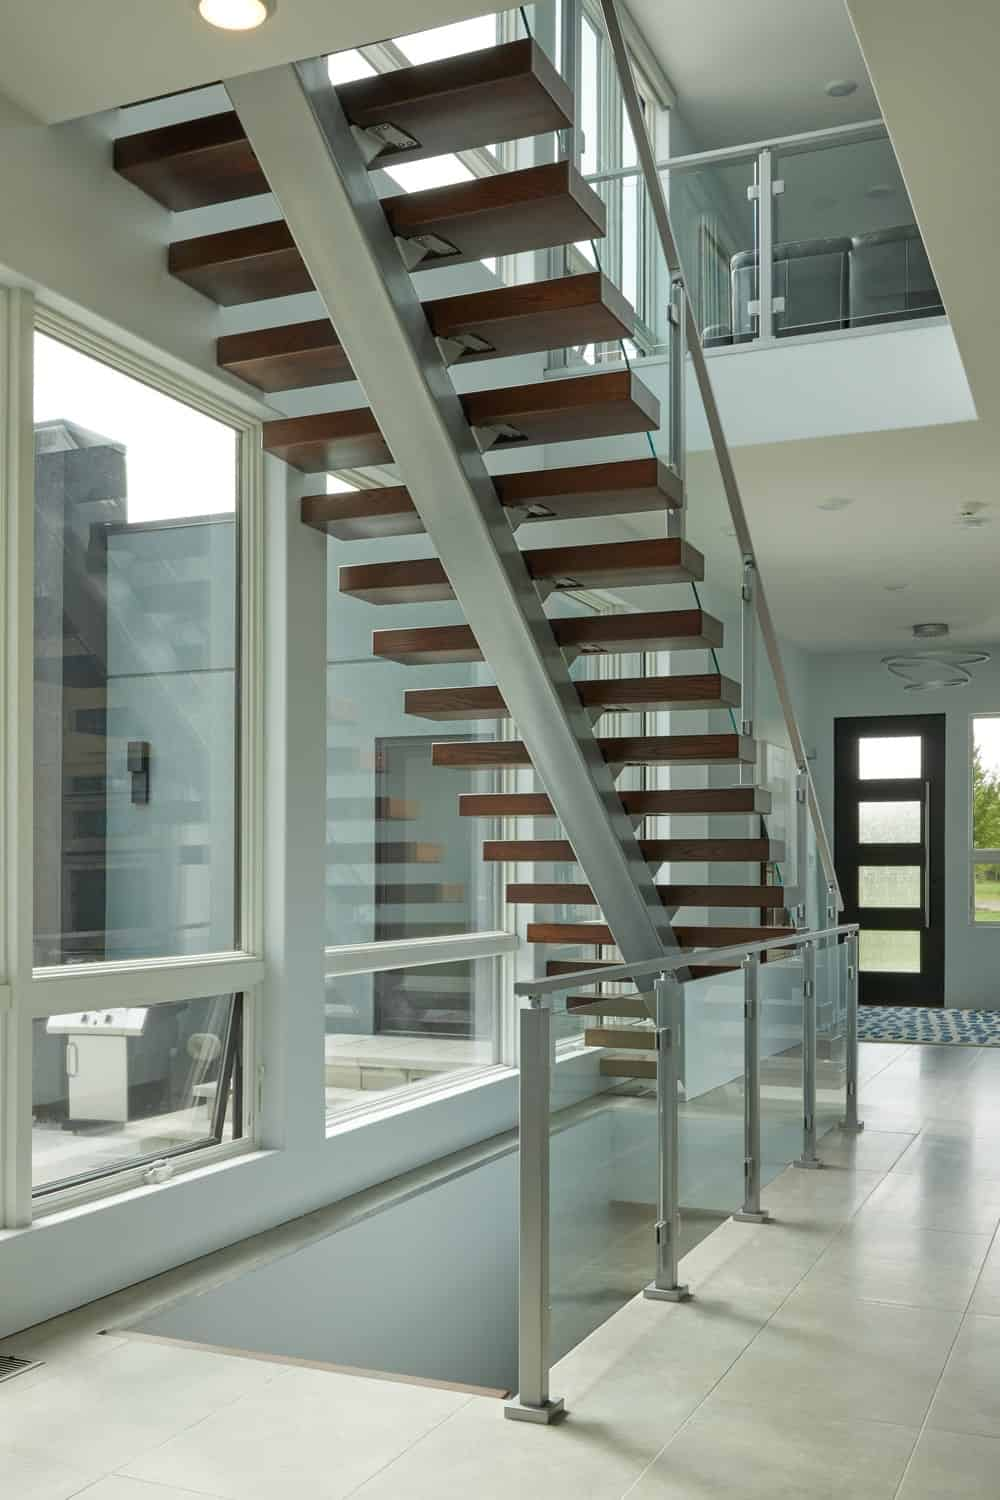 A look underneath the staircase showcases the large metal bar that serves as a support for the steps.